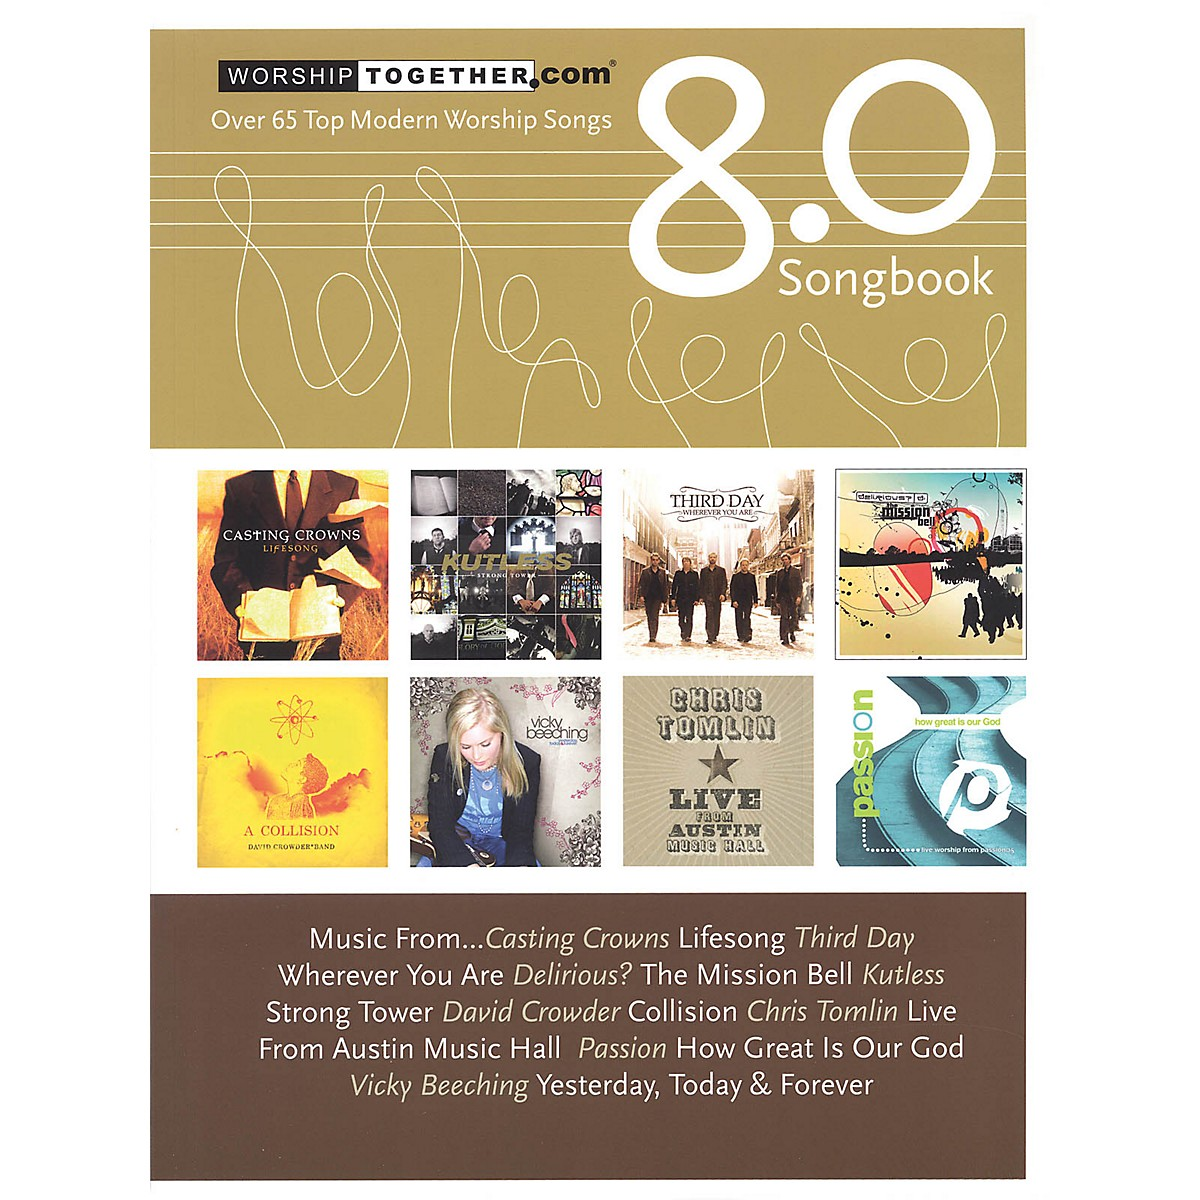 Hal Leonard Worship Together Songbook 8.0 Sacred Folio Series Softcover Performed by Various